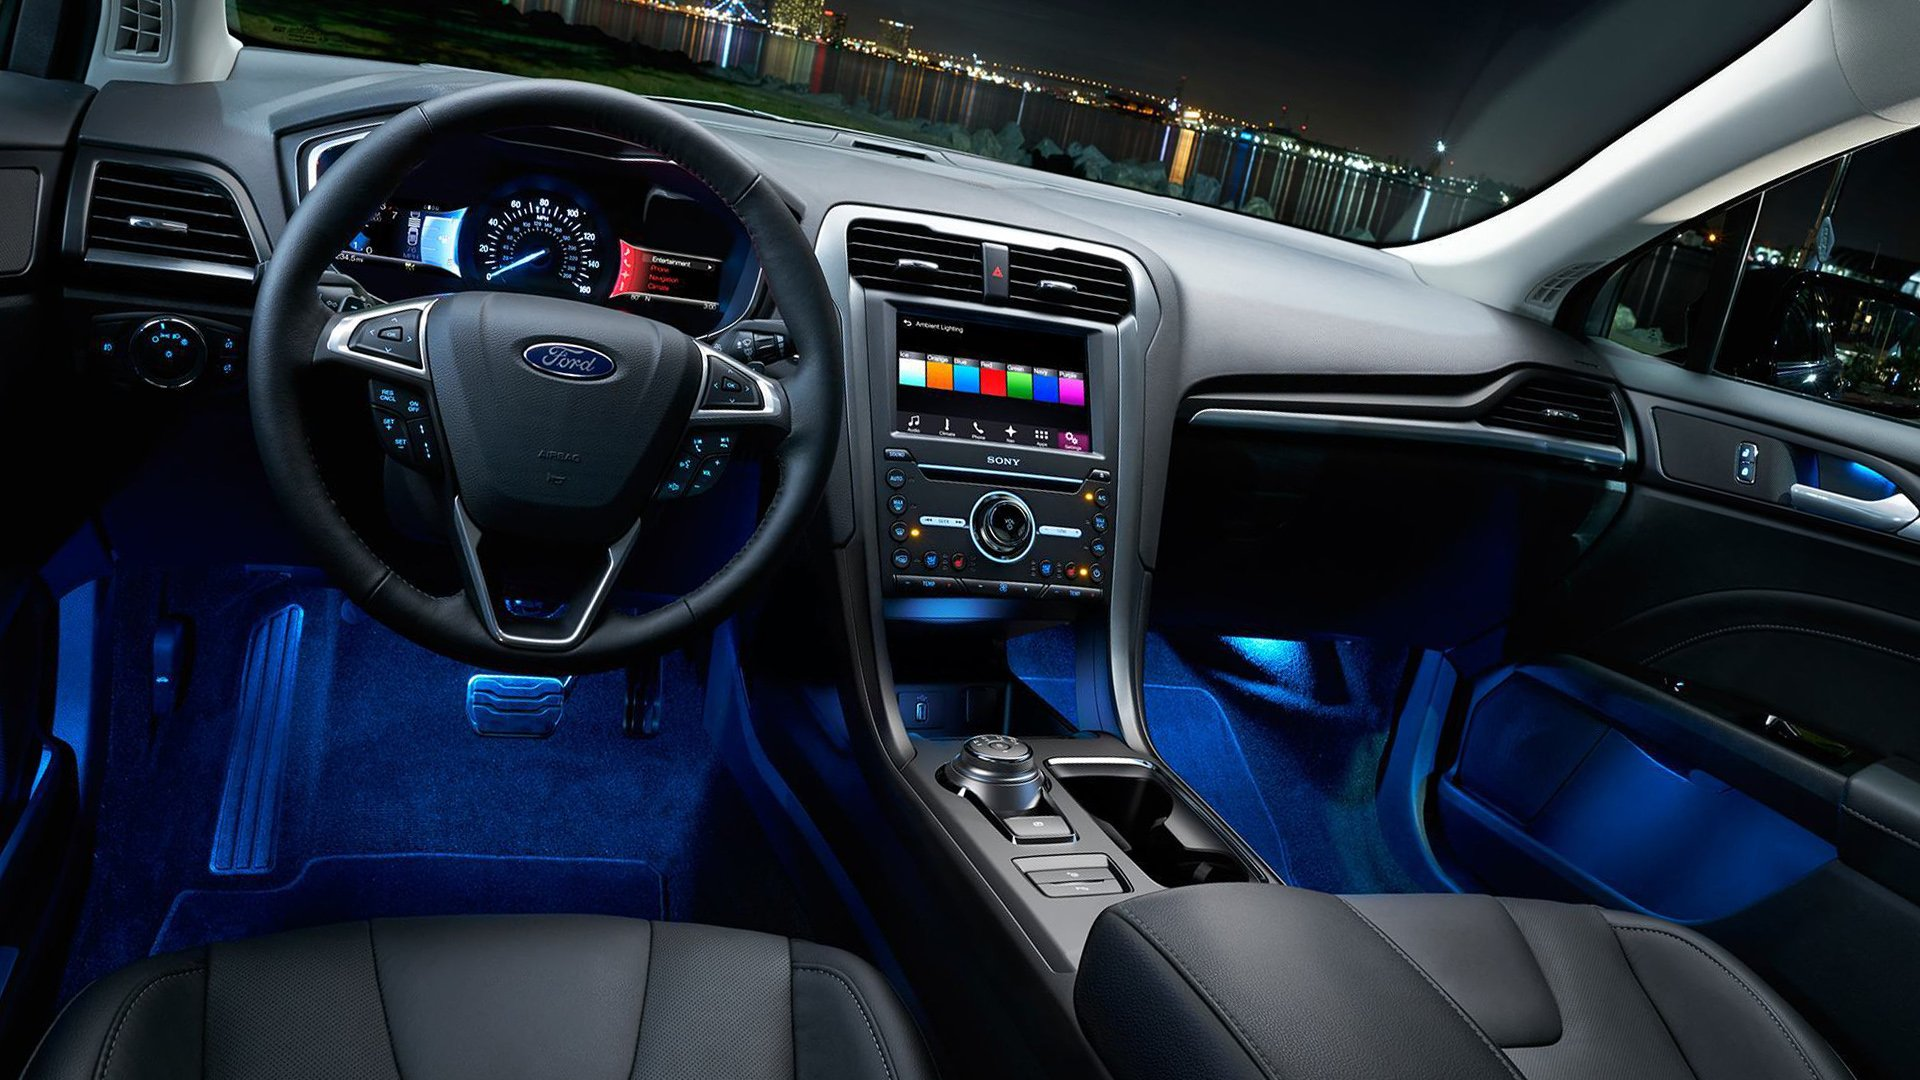 New 2019 Ford Mondeo Interior Design